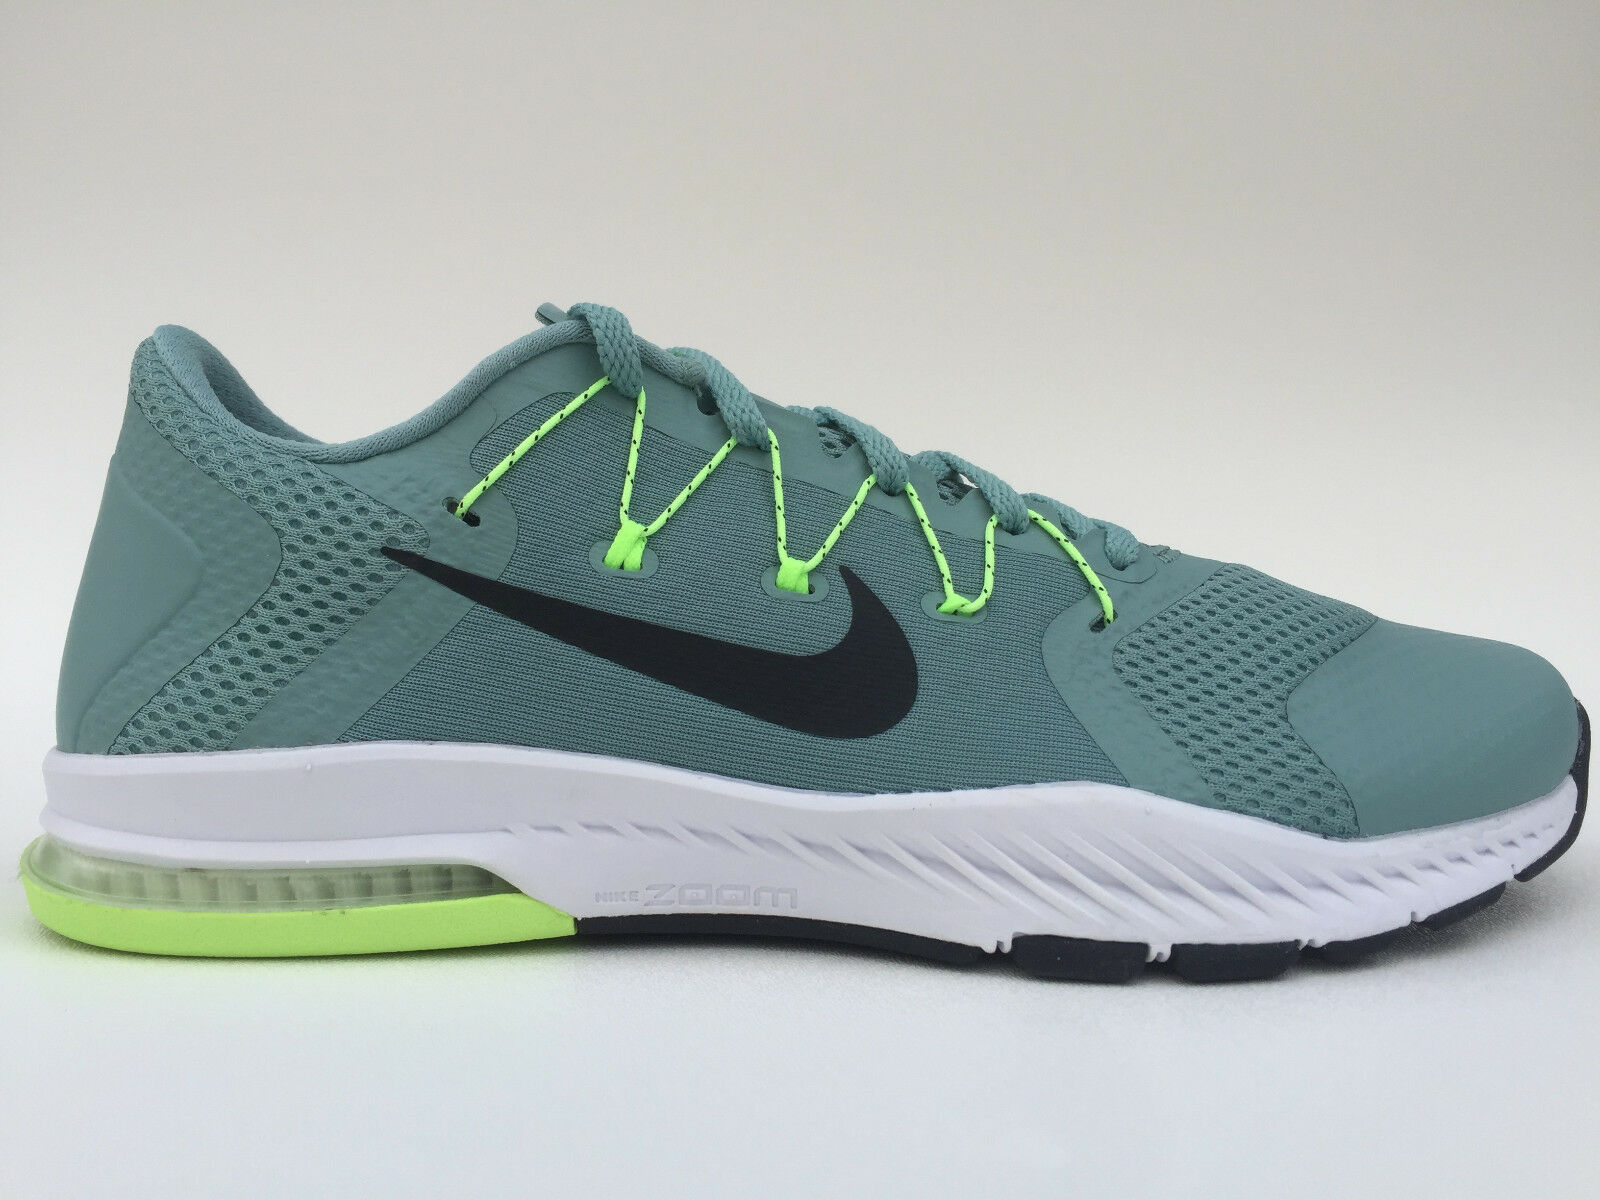 reputable site c6c1c ad6ec Men s NIKE NIKE NIKE Zoom Train Complete TRAINING fonctionnement chaussures  Ghost vert (882119 004)